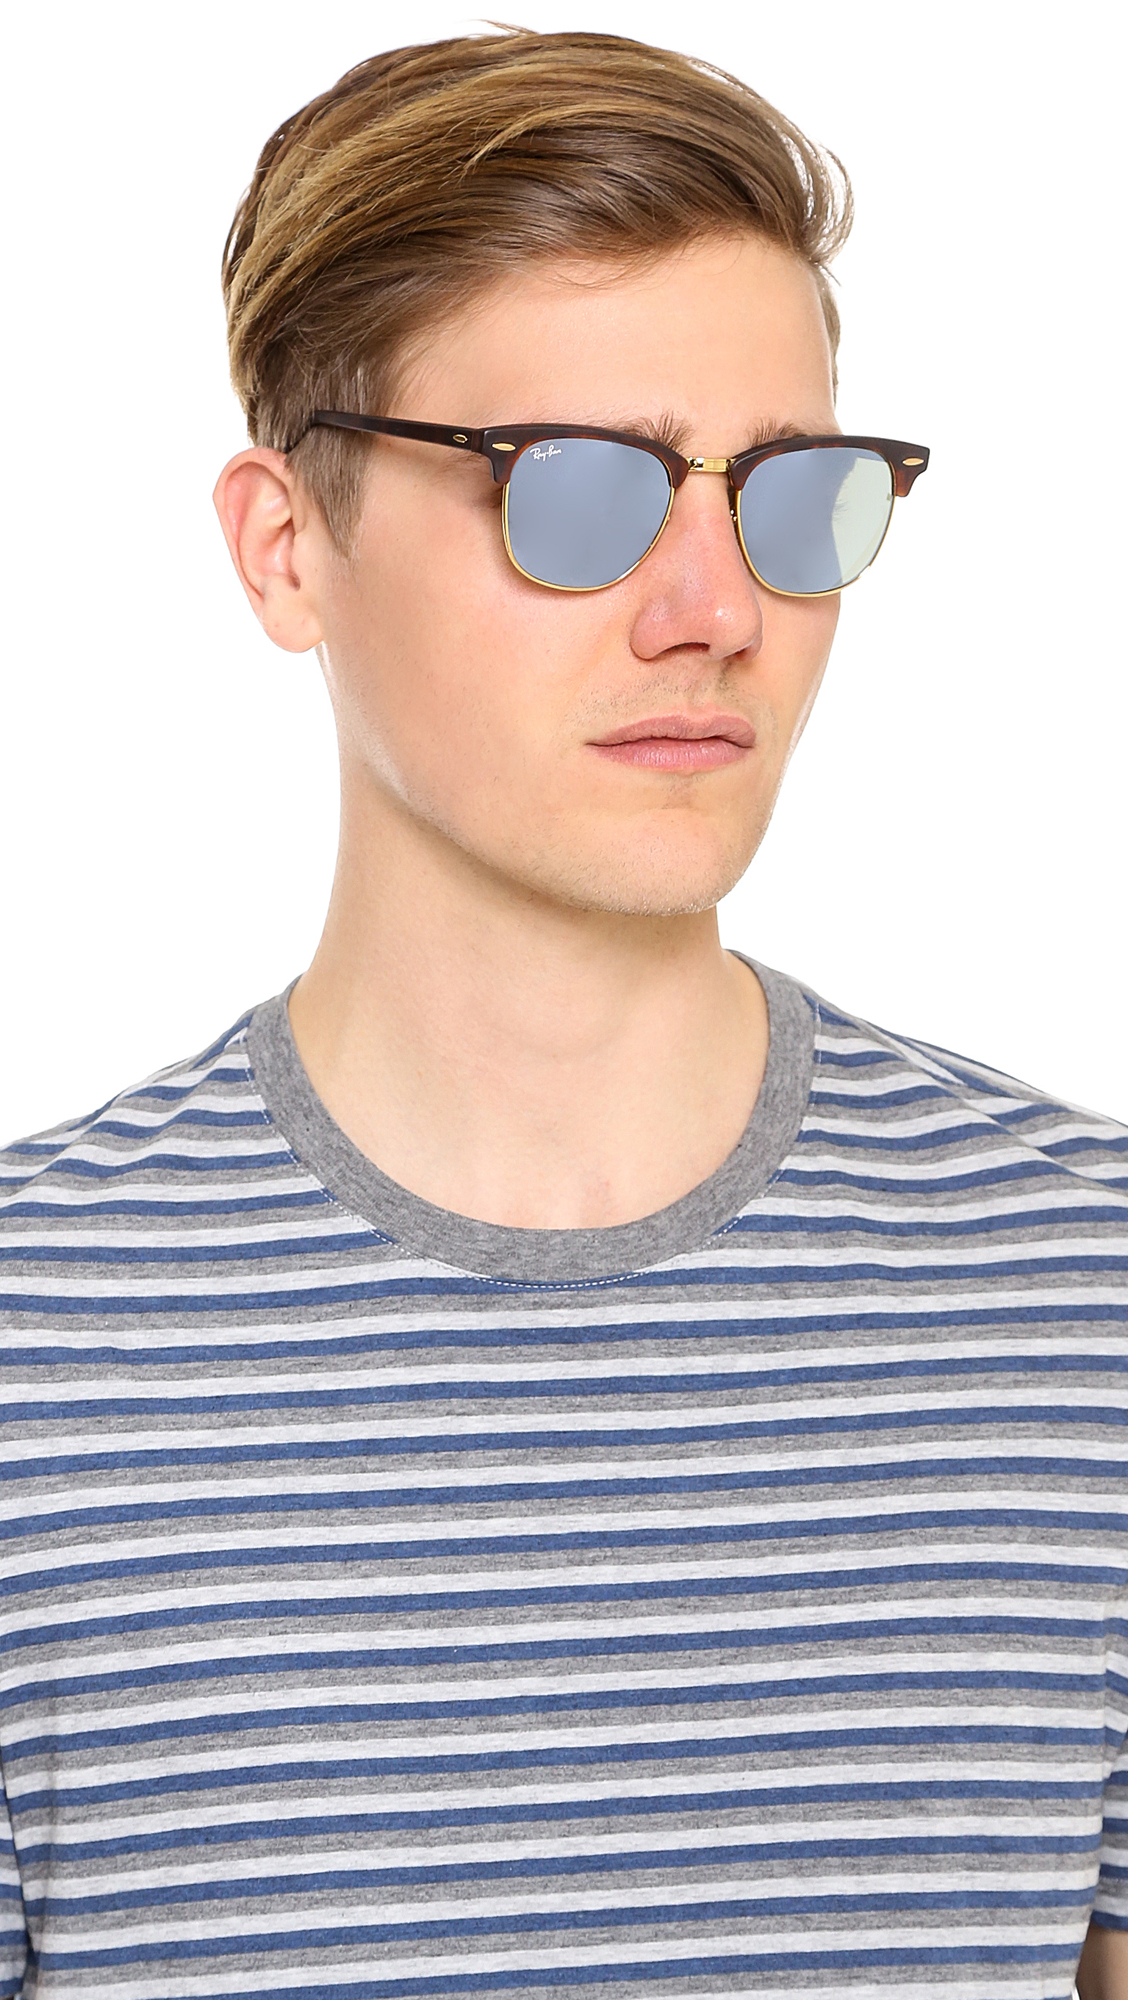 ray ban mens clubmaster  ray ban havana blue clubmaster sunglasses